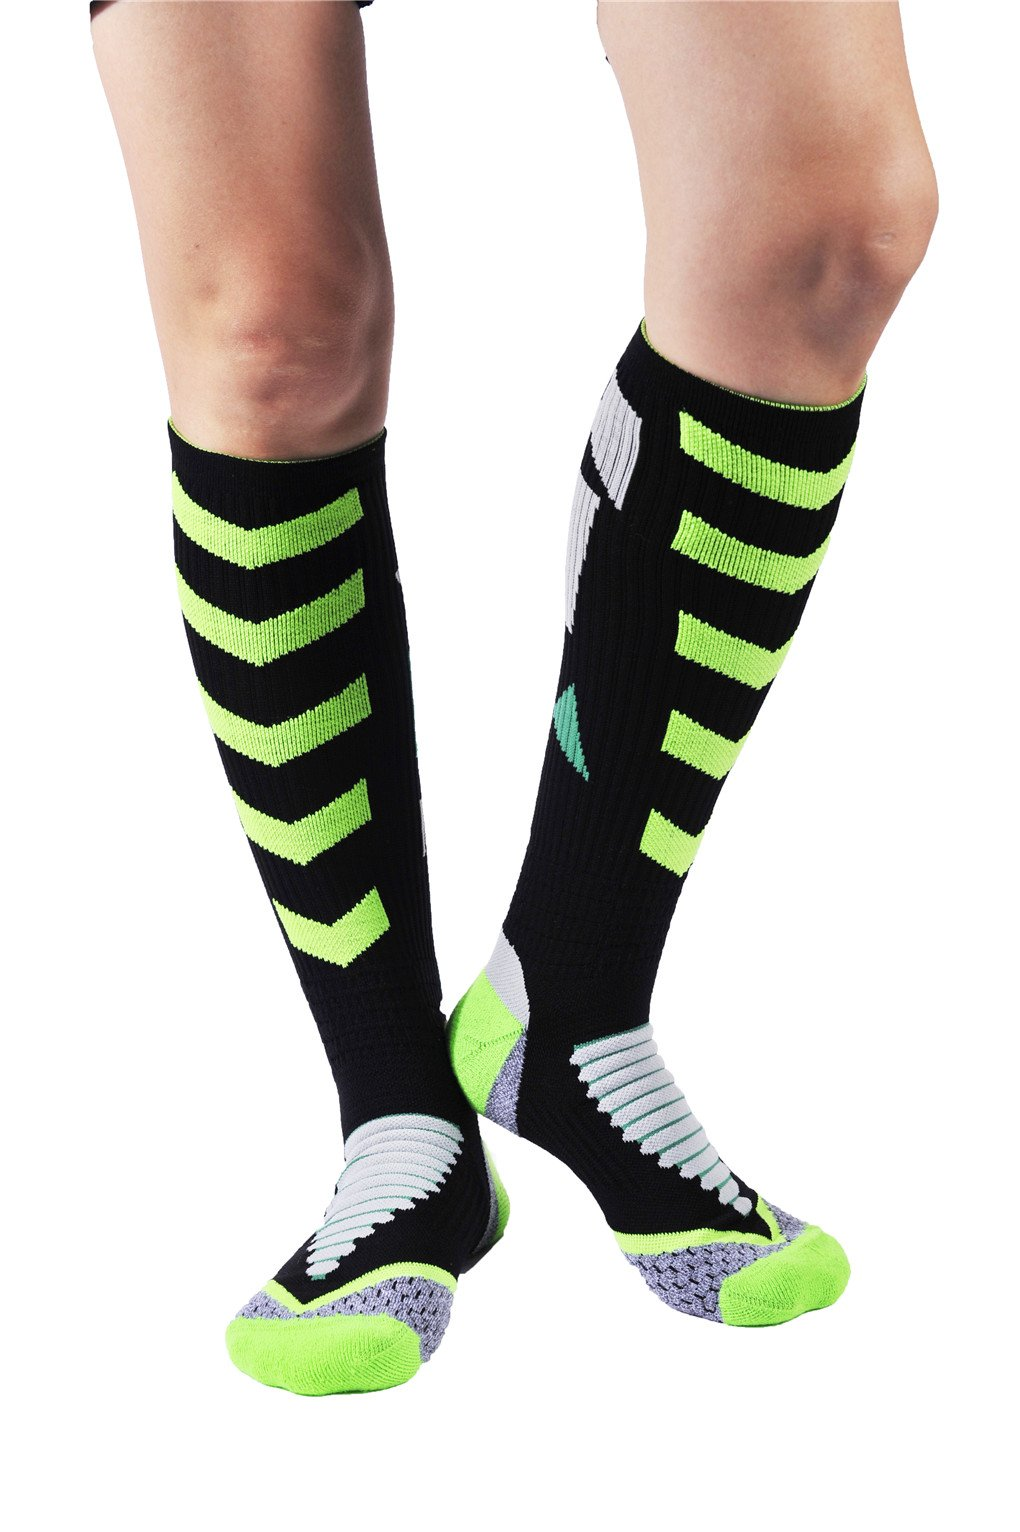 Leoparts Crew Length Basketball Socks Athletic Crew Socks Over the Calf Socks by Leoparts